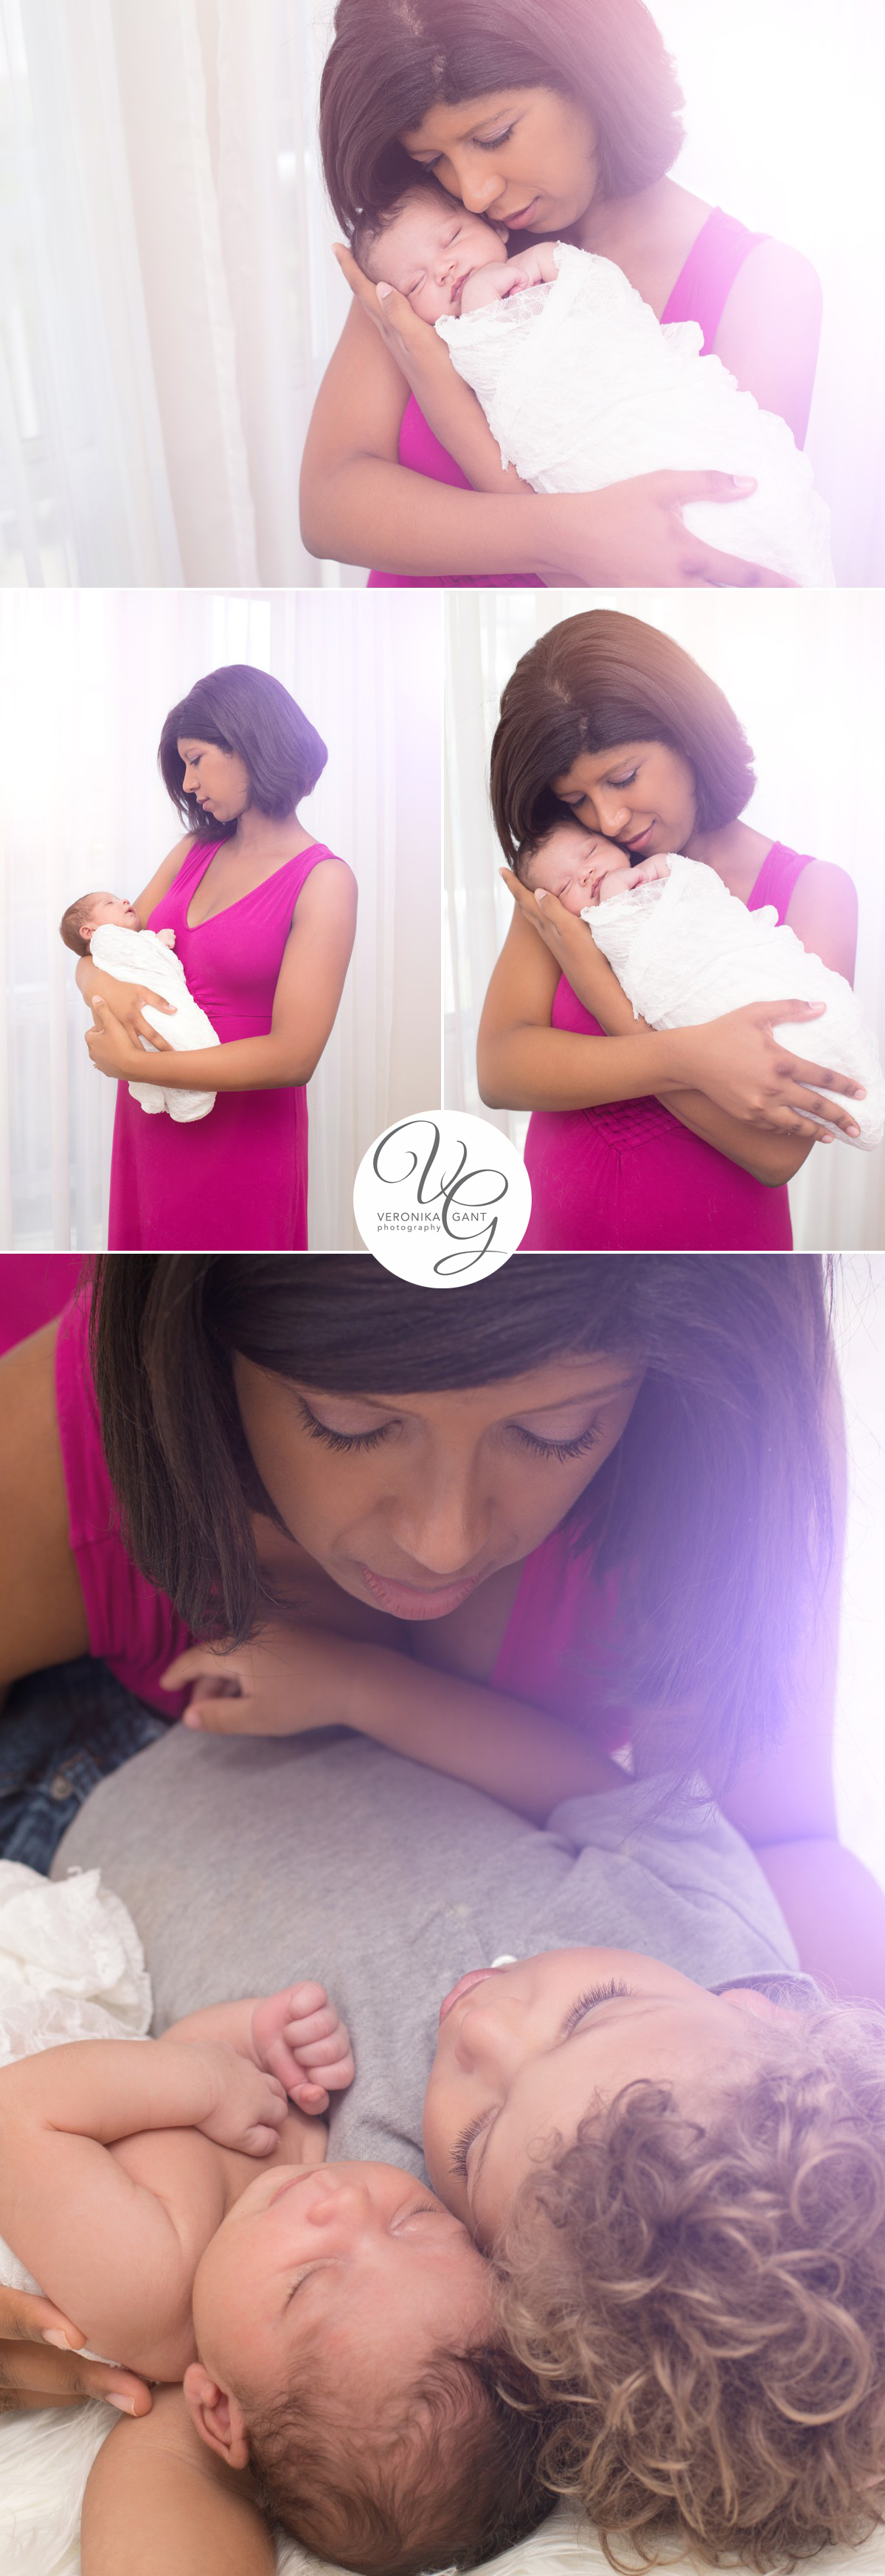 San-Antonio-Newborn-Photography-Ideas-by-Veronika-Gant-Christmas-Theme-06